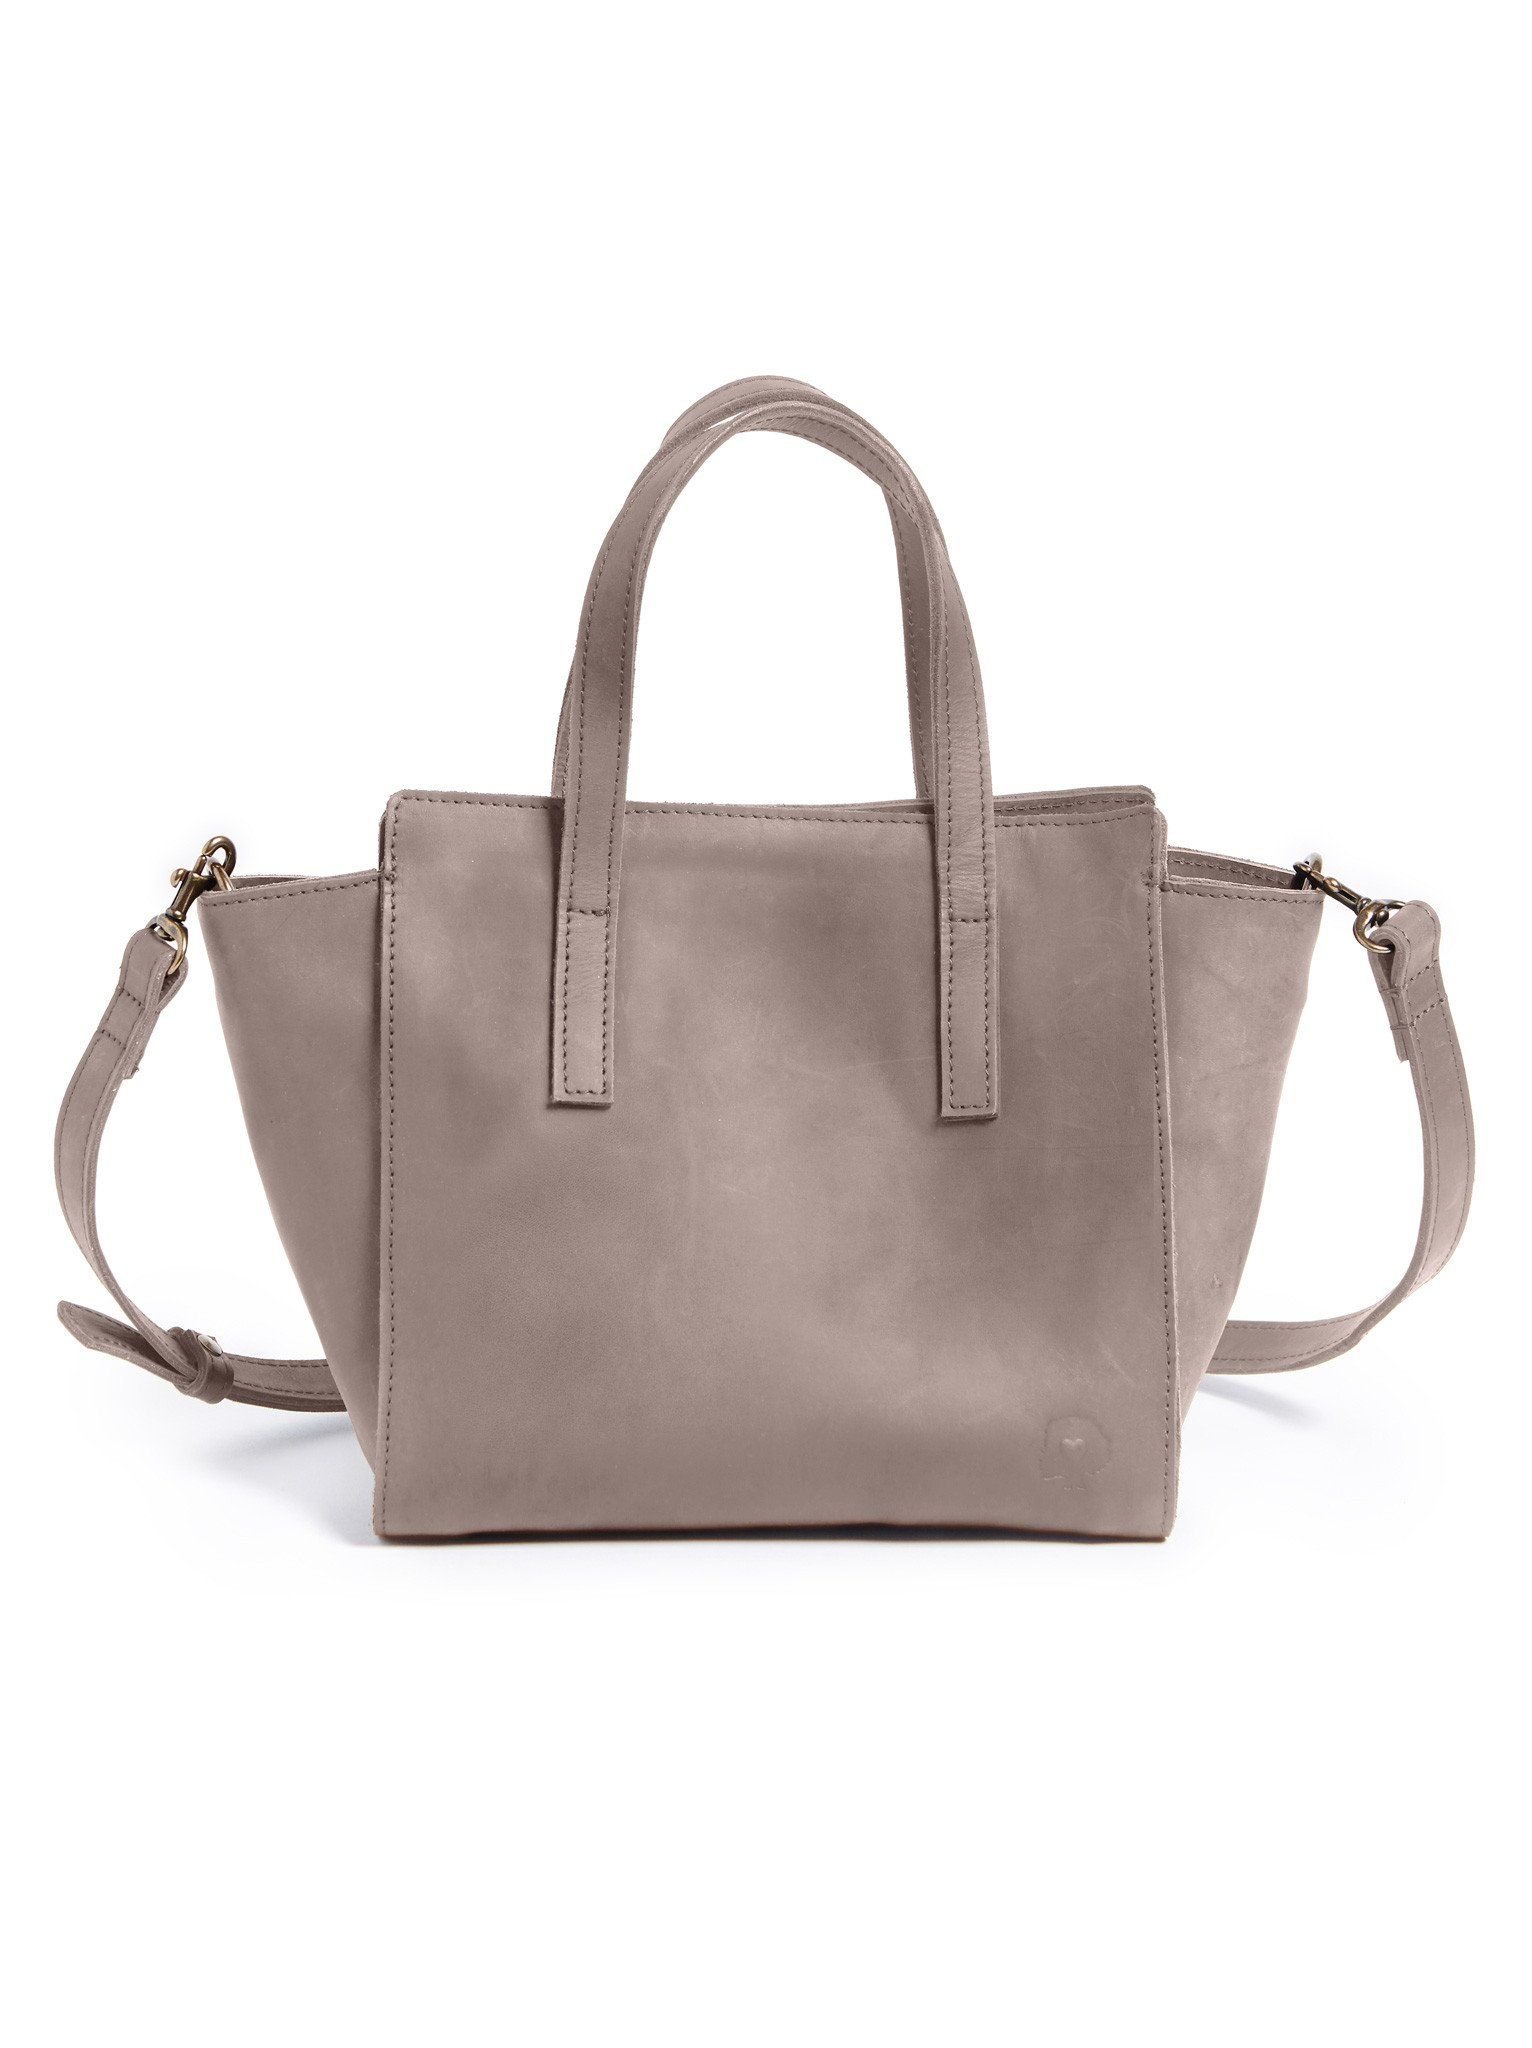 Meles Leather Handbag - now available in pewter!!  c15f39aede00e